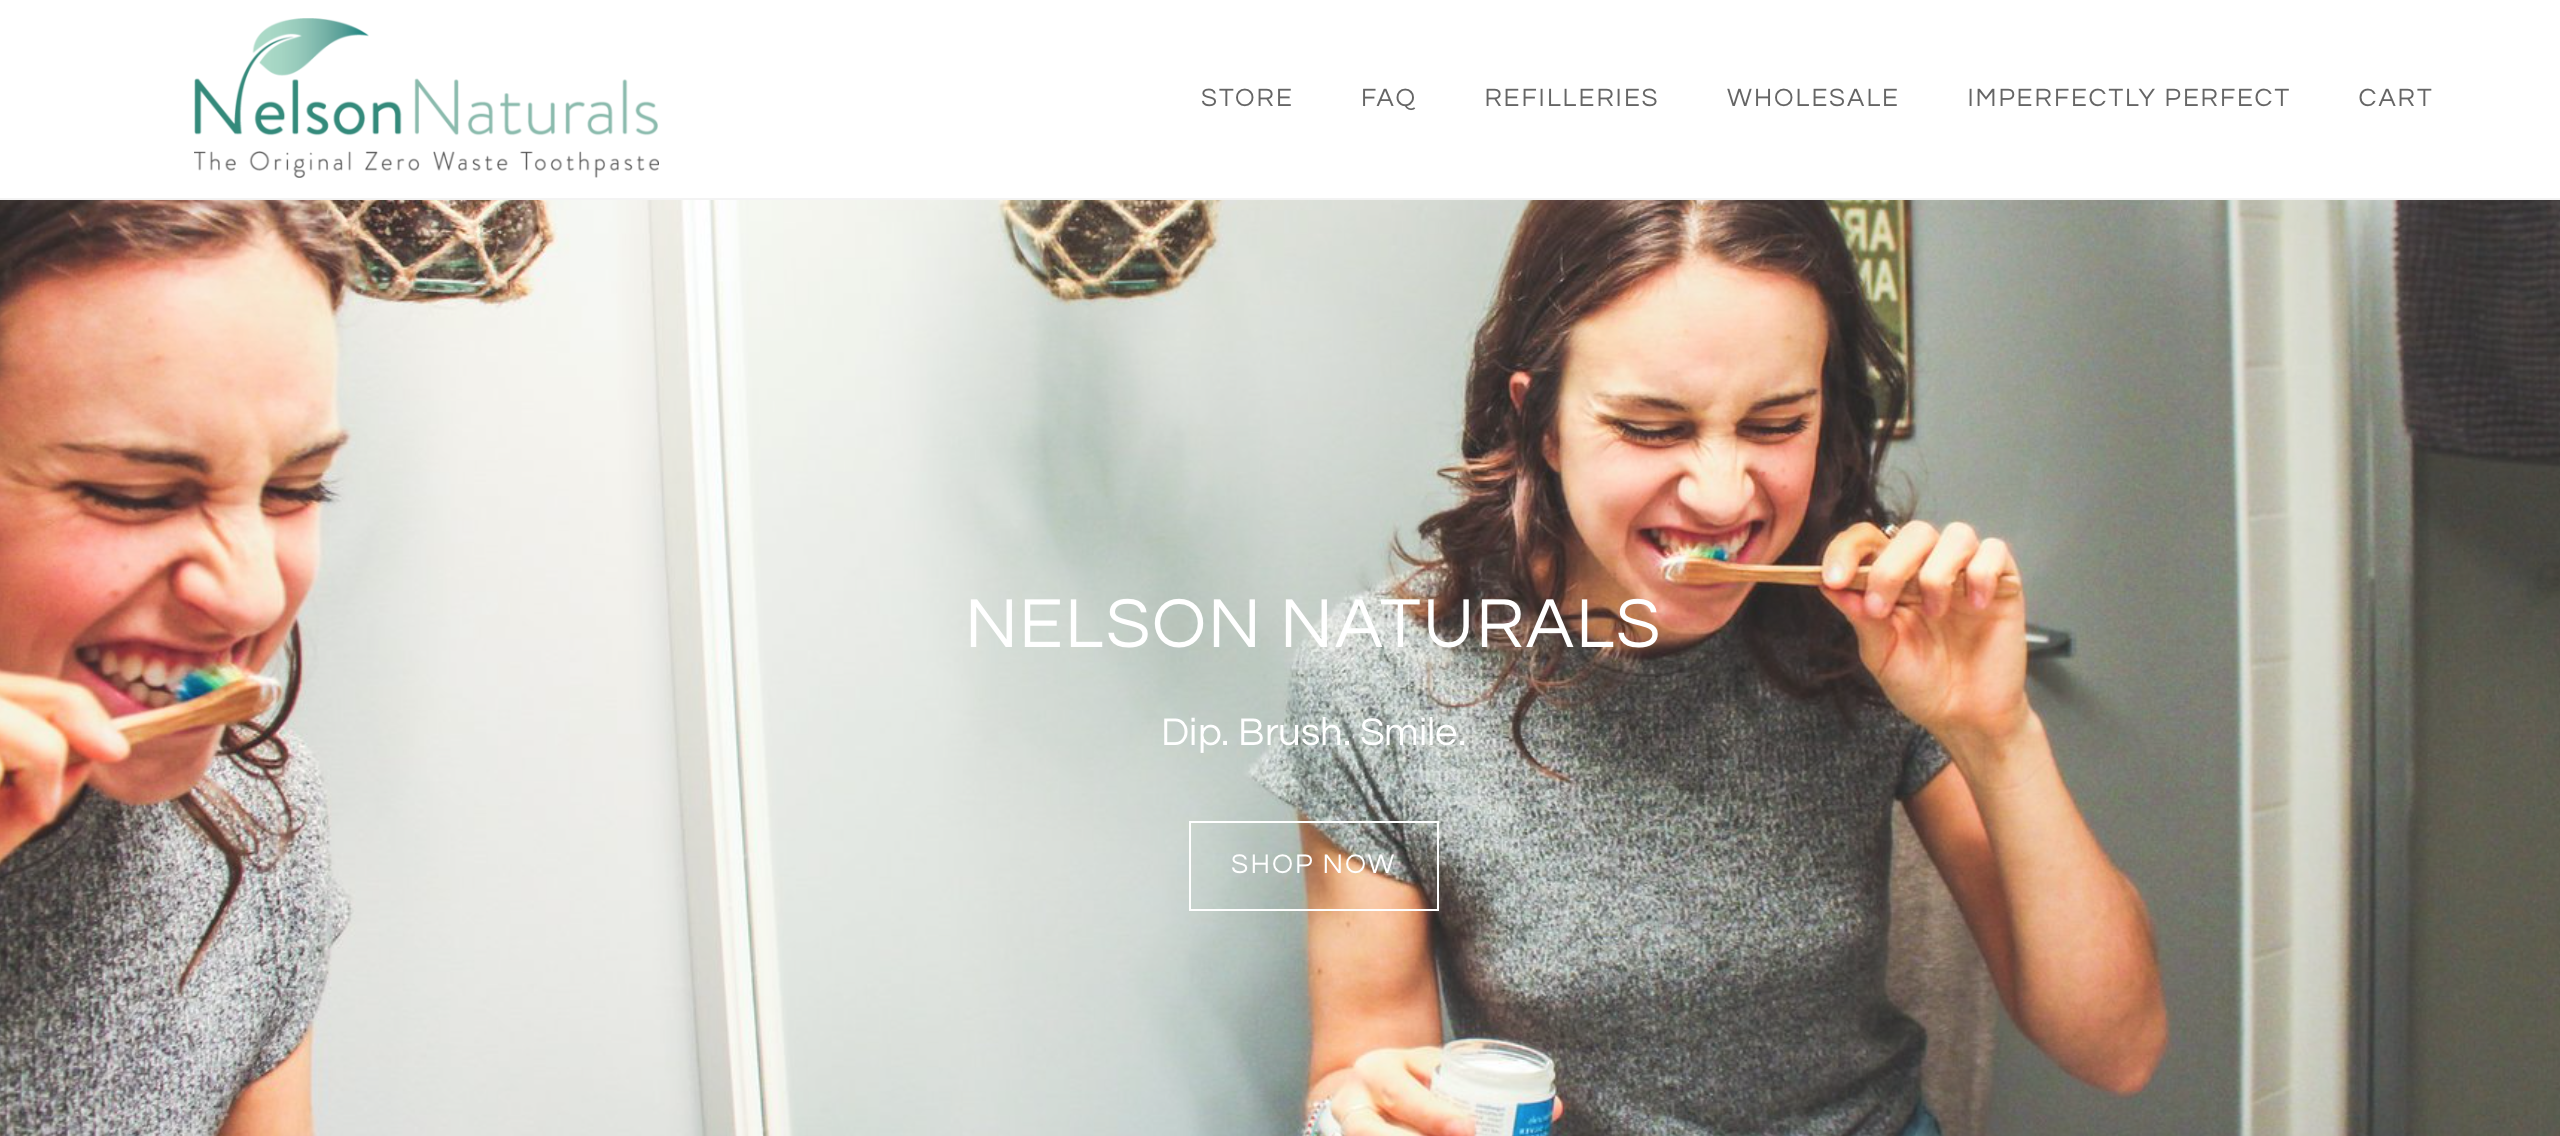 Nelson Naturals Toothpaste Business sale is a business for sale in BC.